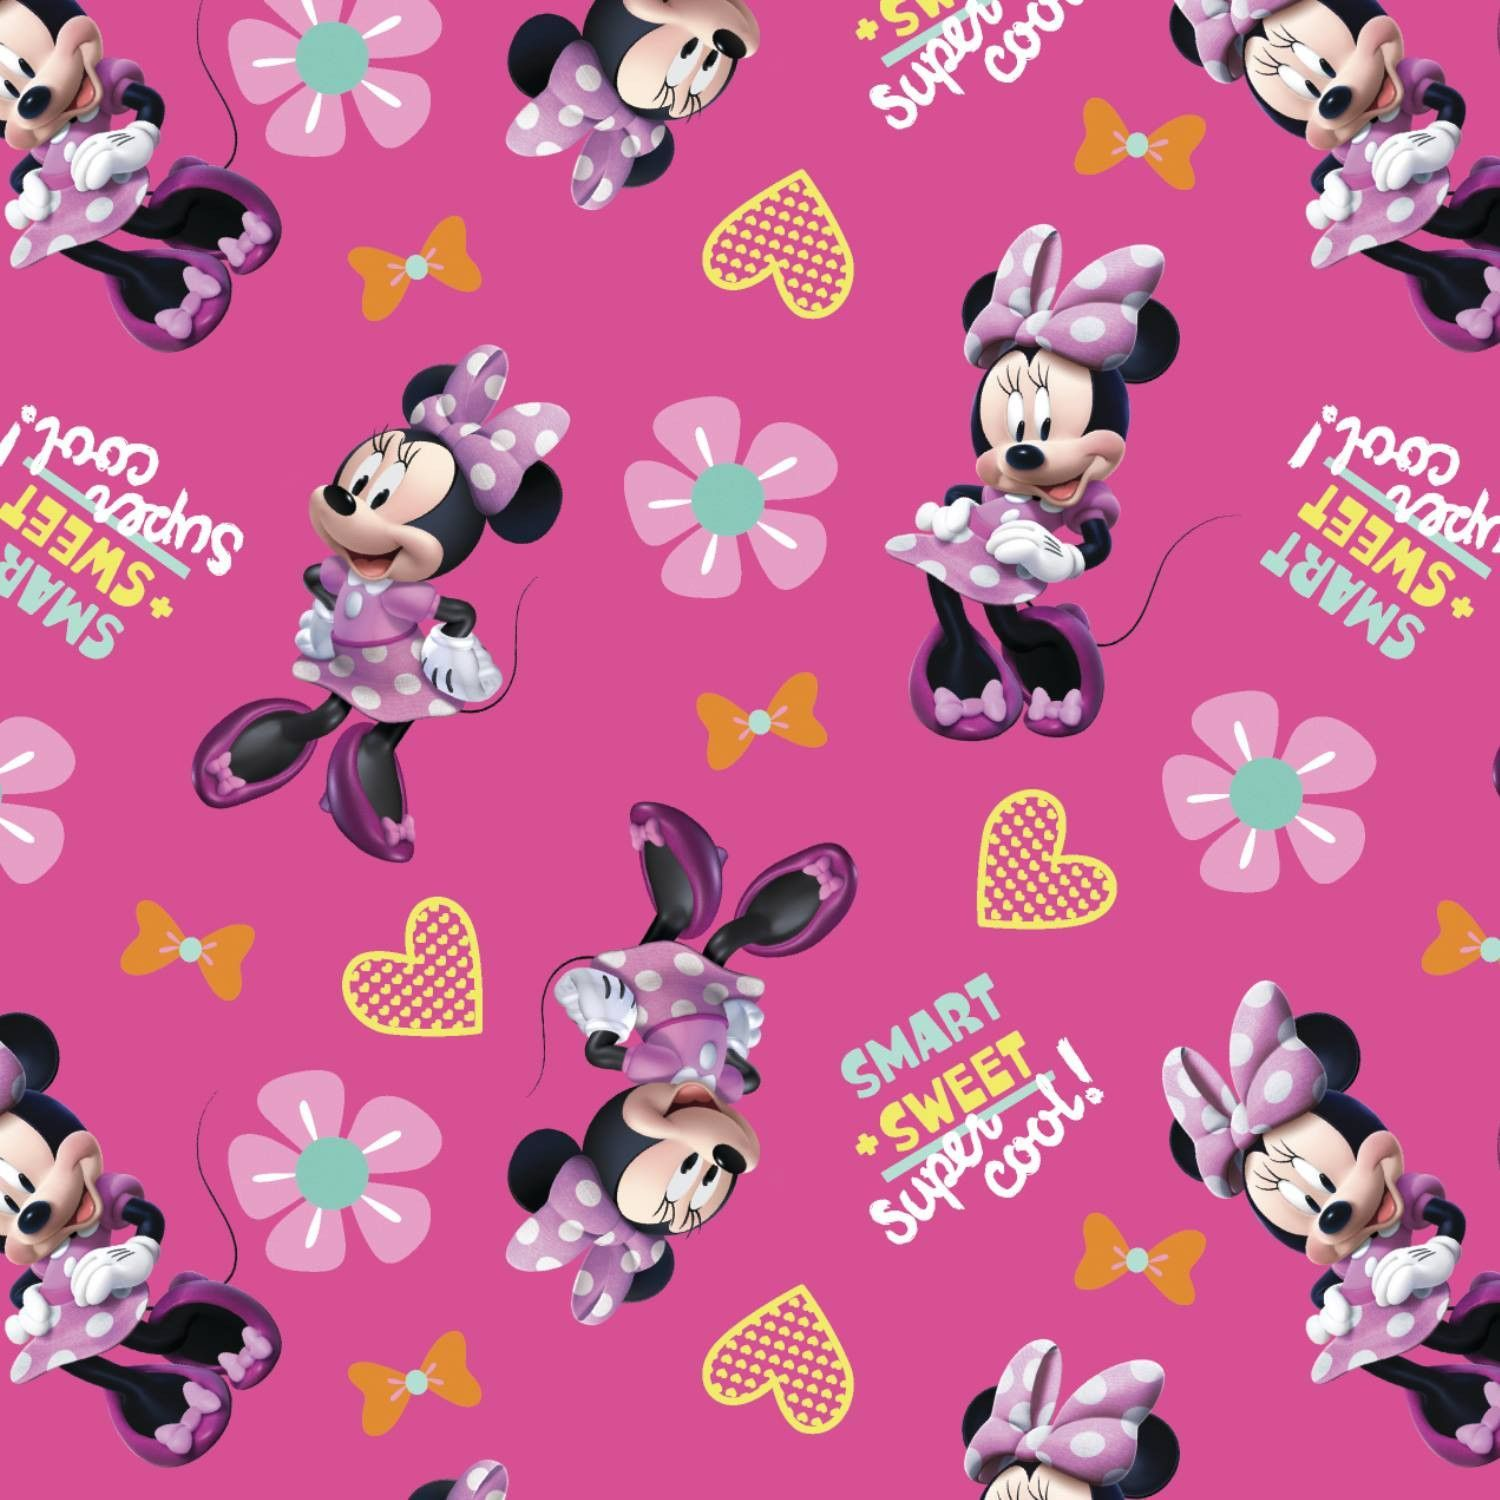 Smart Sweet Super Cool Minnie Mouse Mickey And Chubby Daisy Tsum Custom Phone Case Bumber Pink